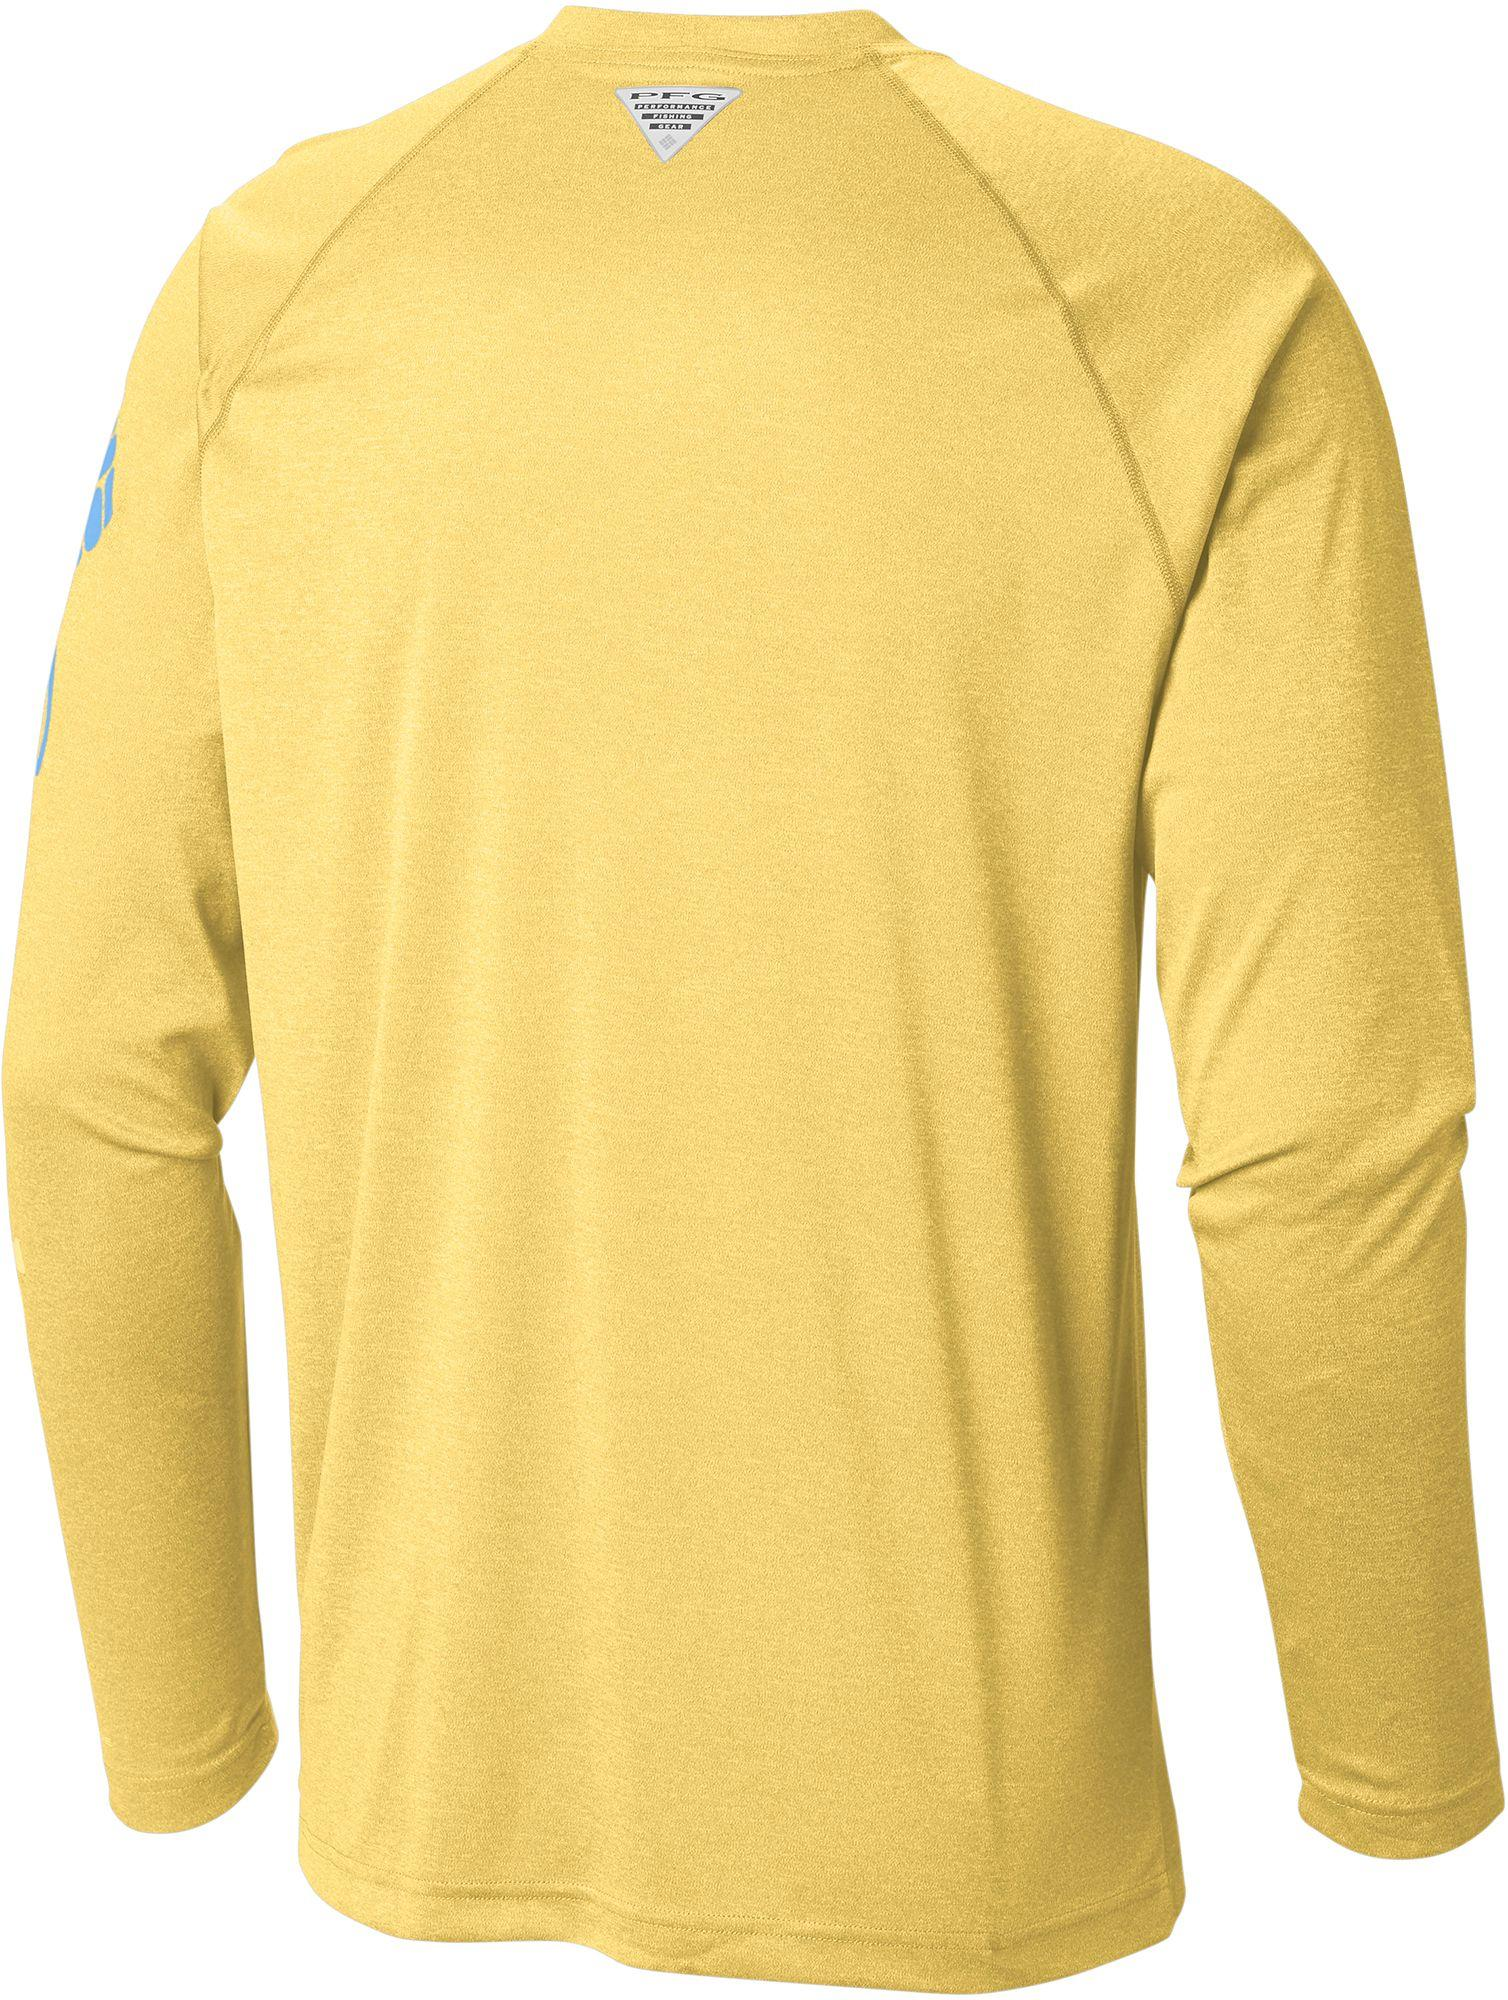 eefcdeee13c Columbia Pfg Terminal Tackle Heather Long Sleeve Shirt in Yellow for Men -  Save 14% - Lyst